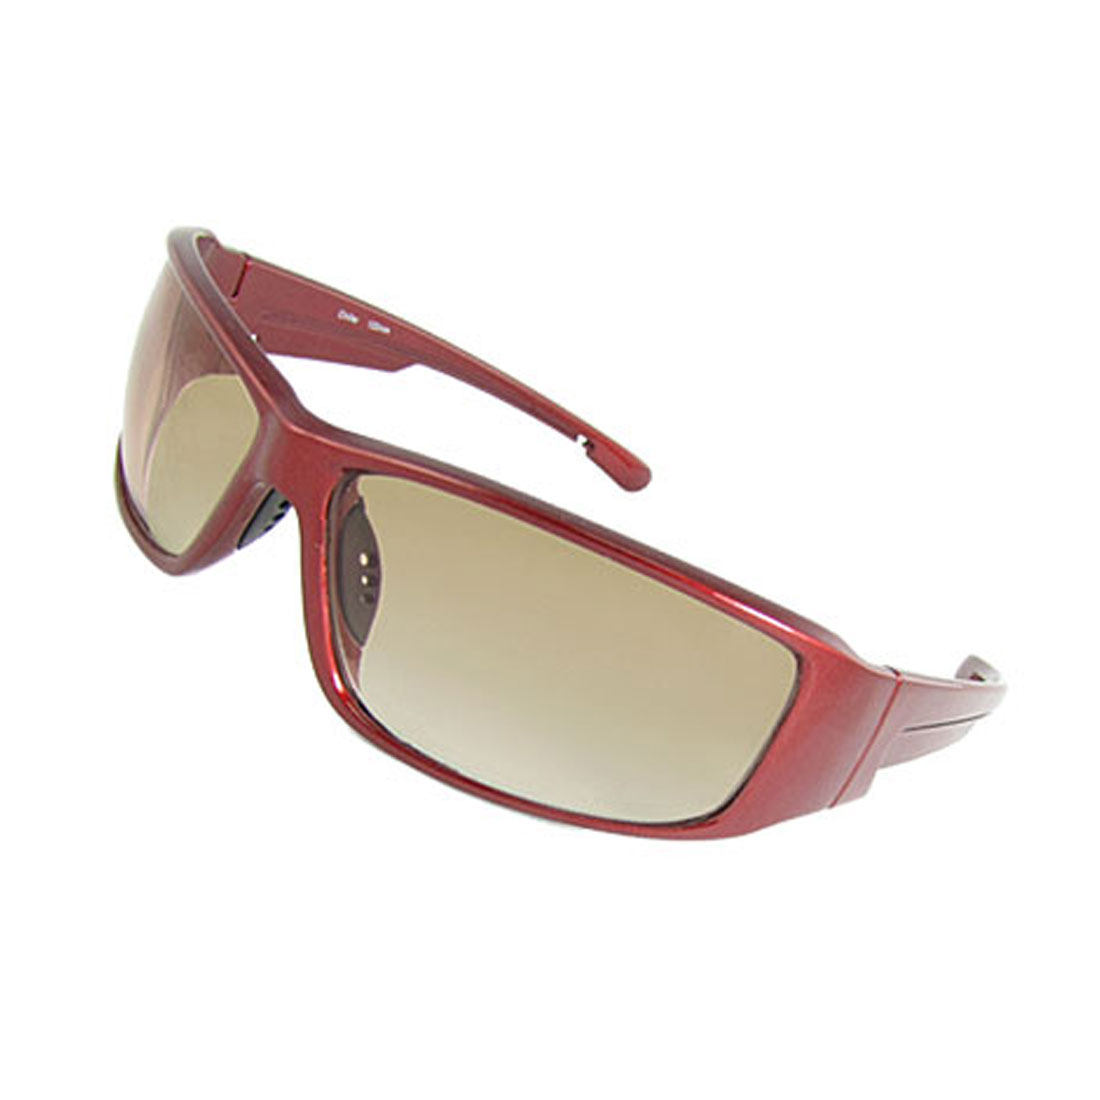 Unisex Plastic Arms Full Rim Leisure Sunglasses Burgundy